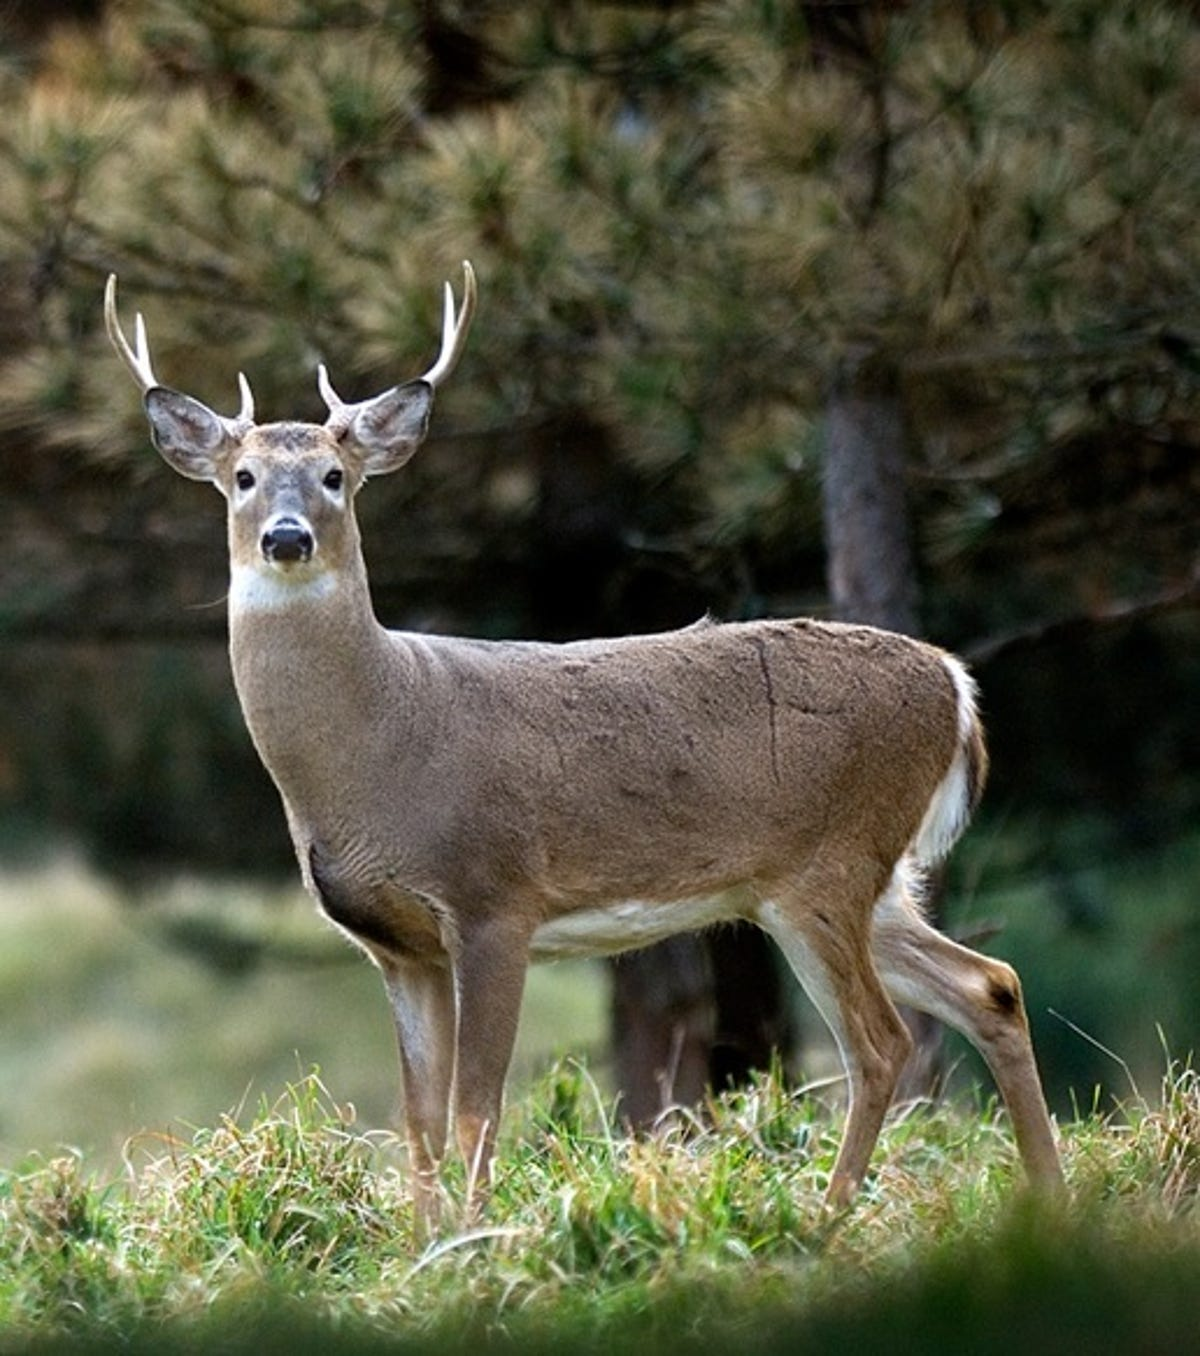 State: Don't eat venison taken from near former Wurtsmith base